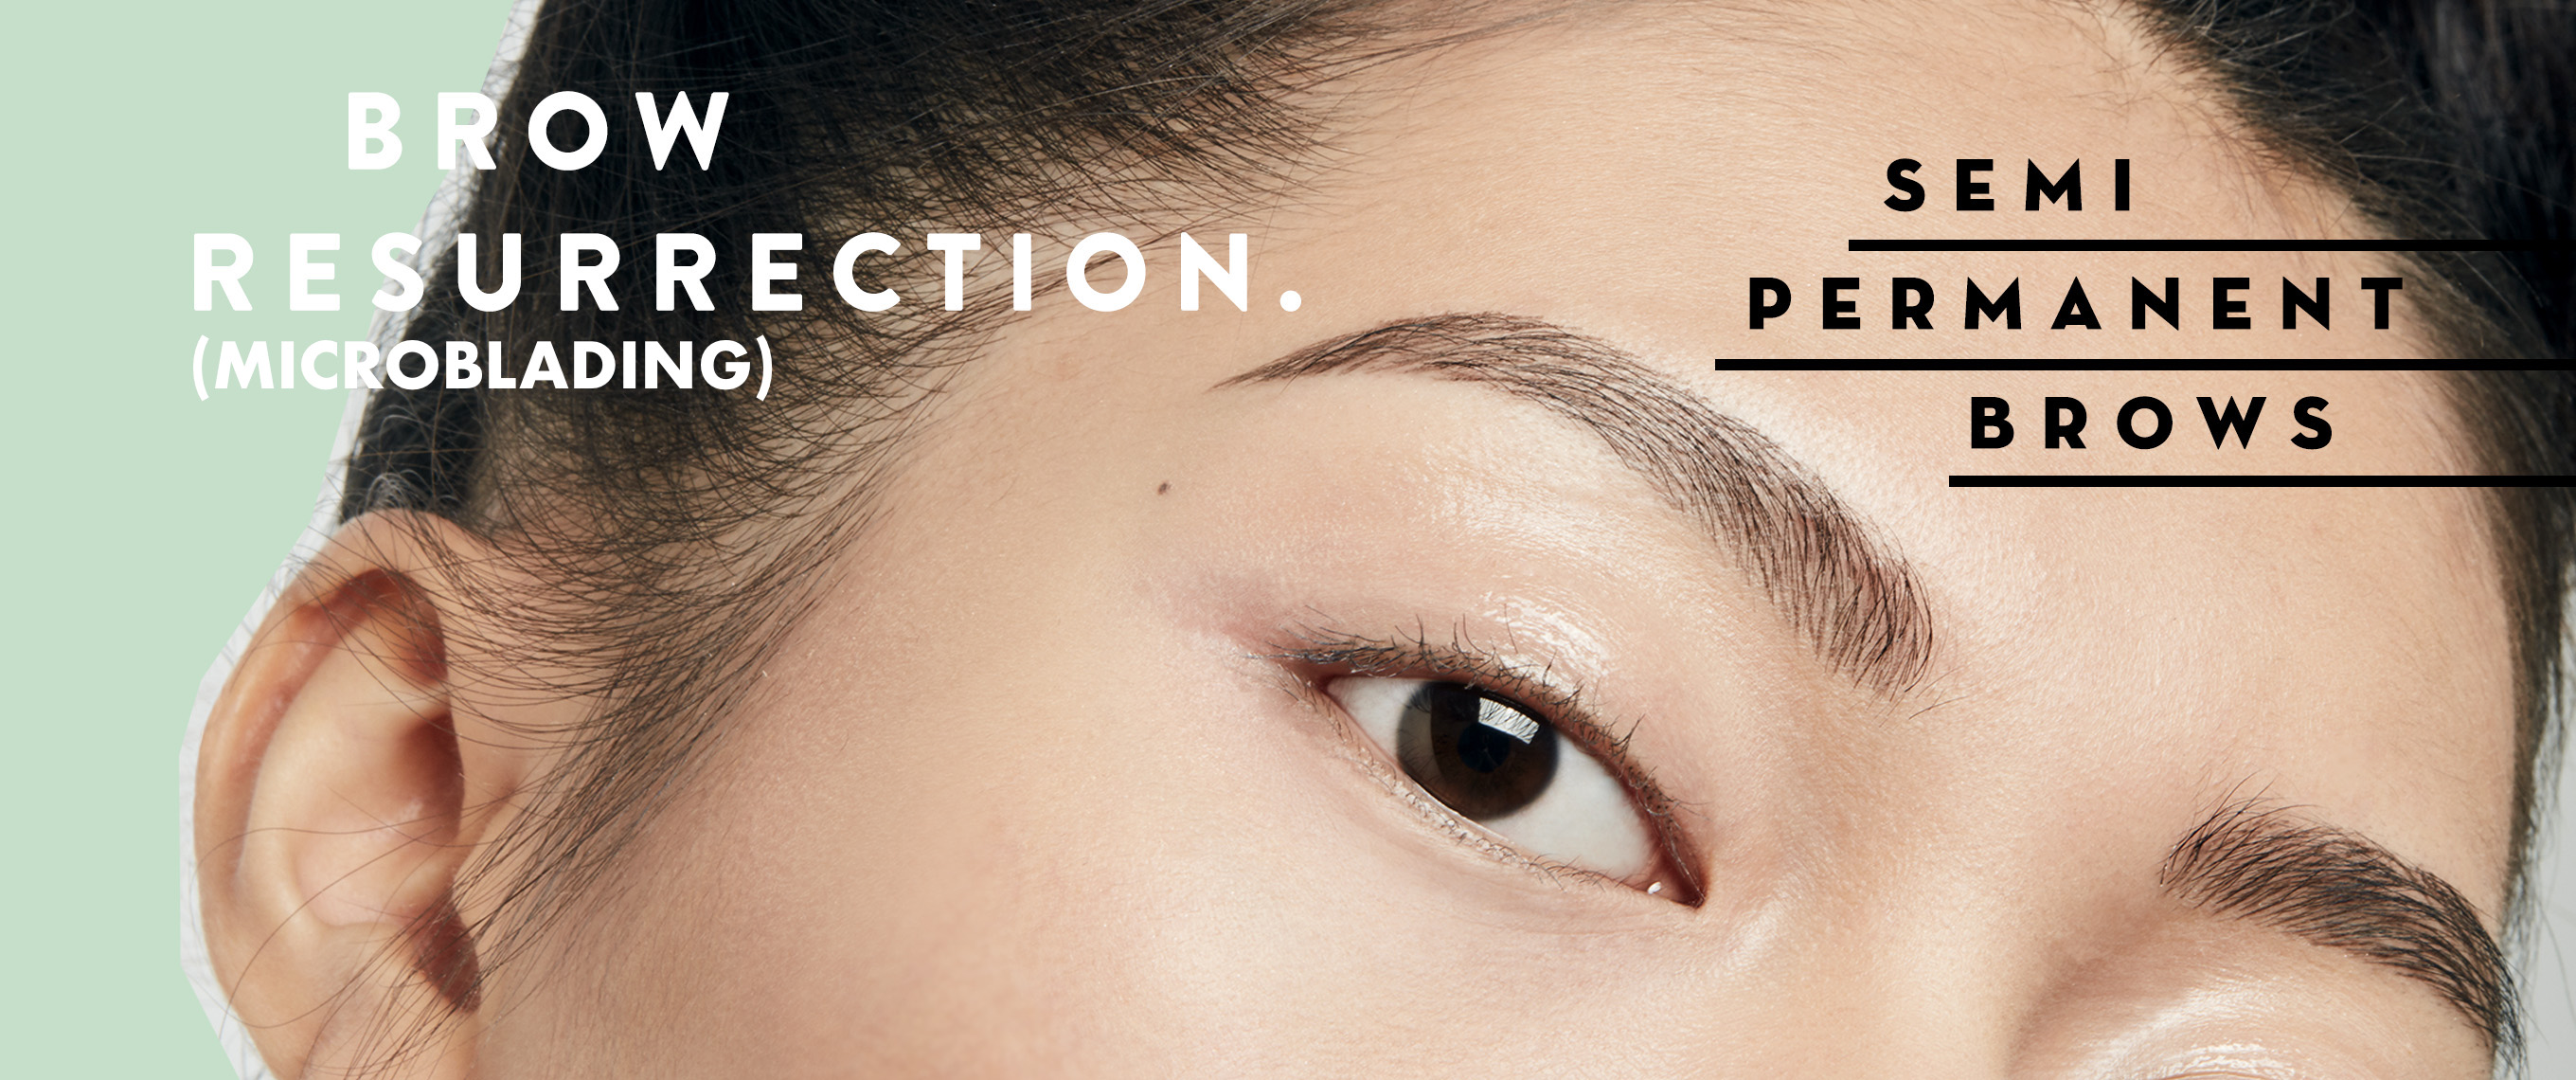 Browhaus - Brow Resurrection, Semi Permanent Eyebrows